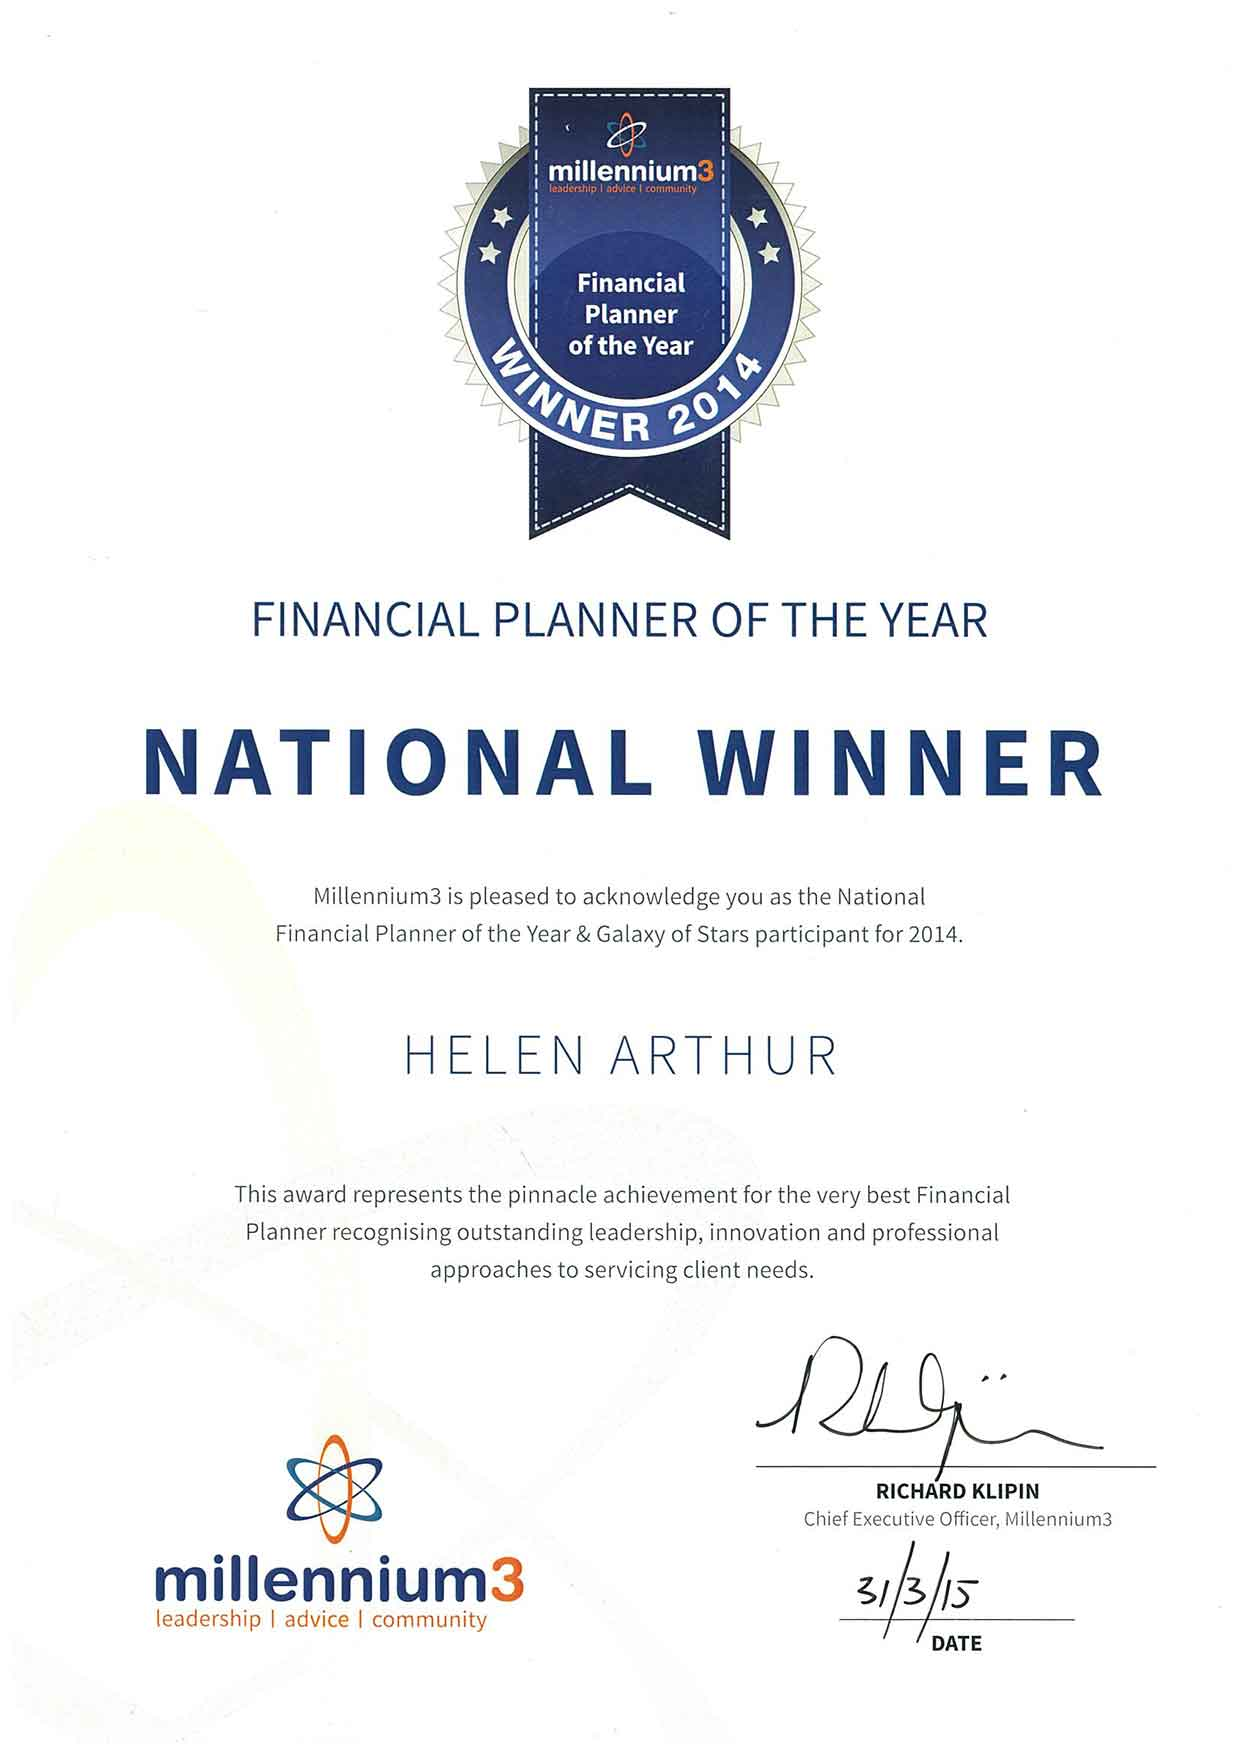 Financial Planner of the year & galaxy star participant of 2014